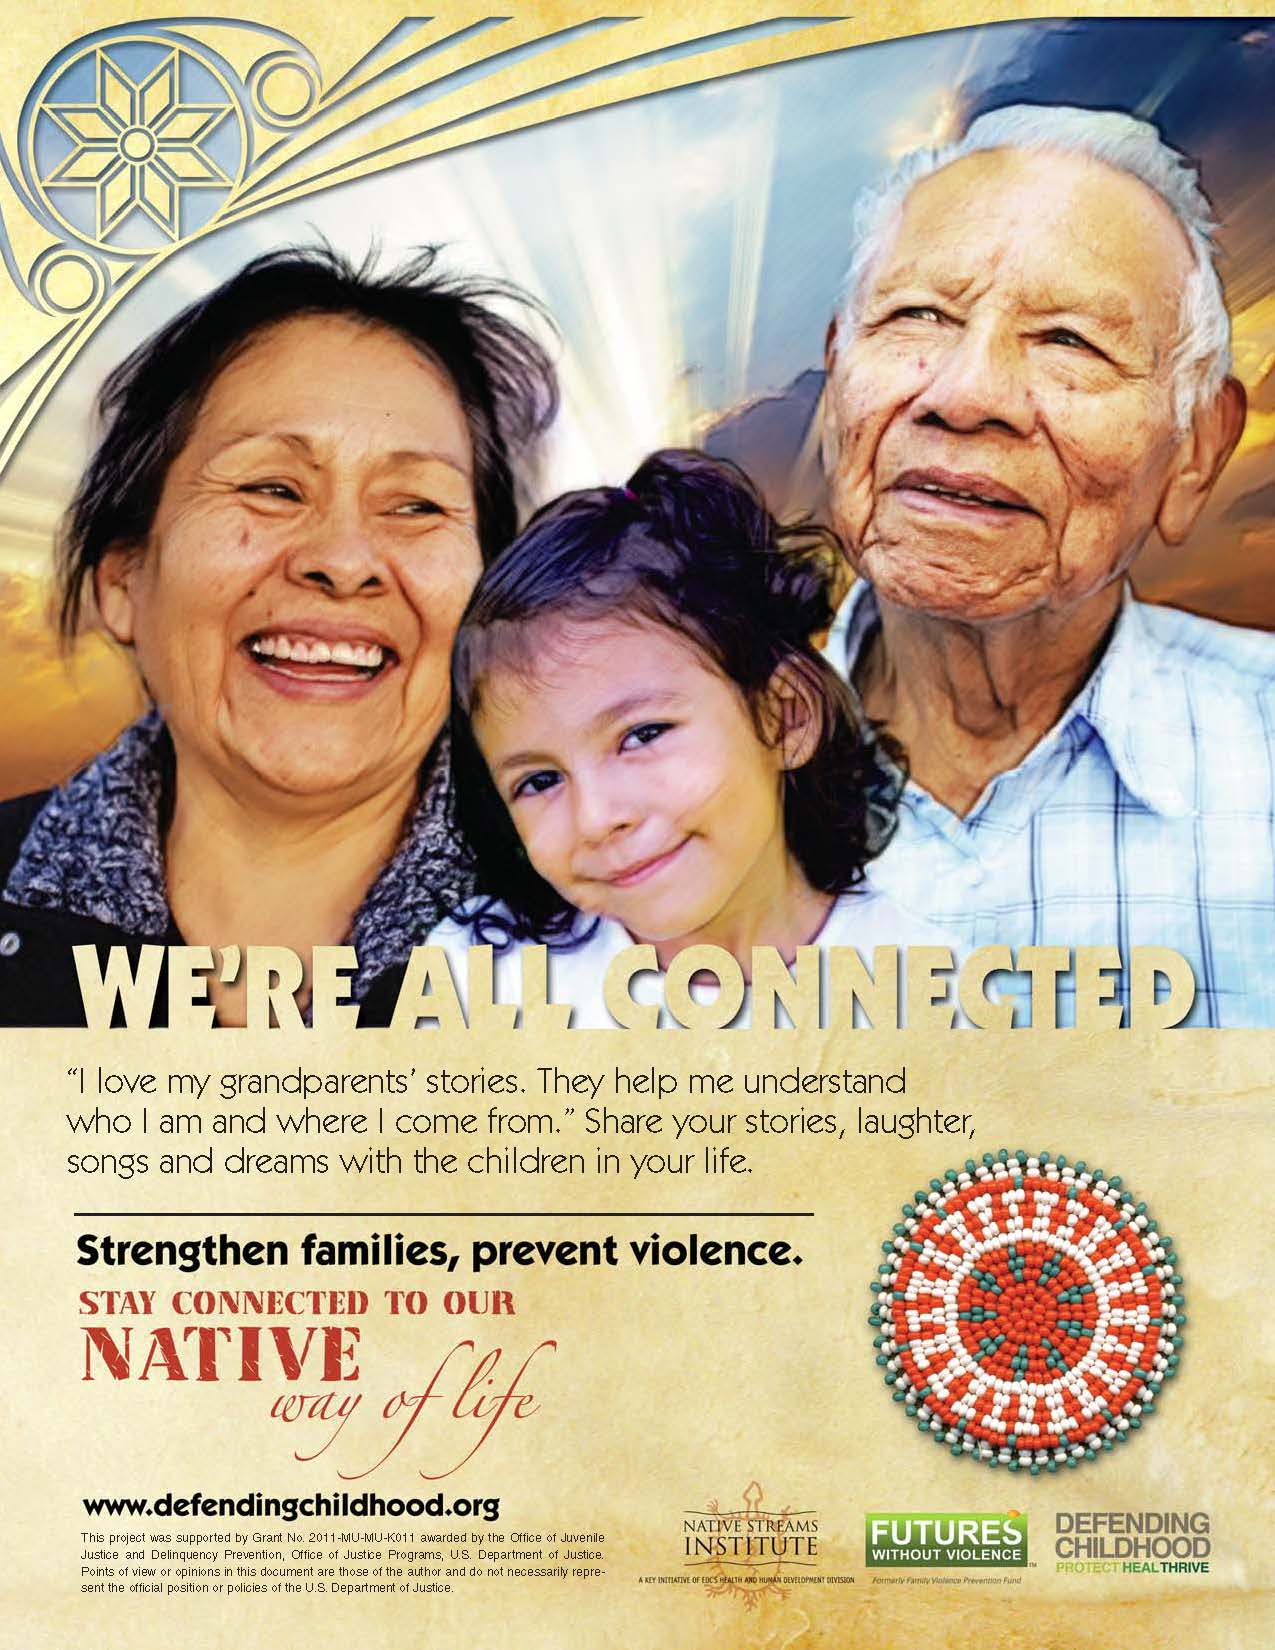 Strengthen Families, Prevent Violence Poster - Grandparents